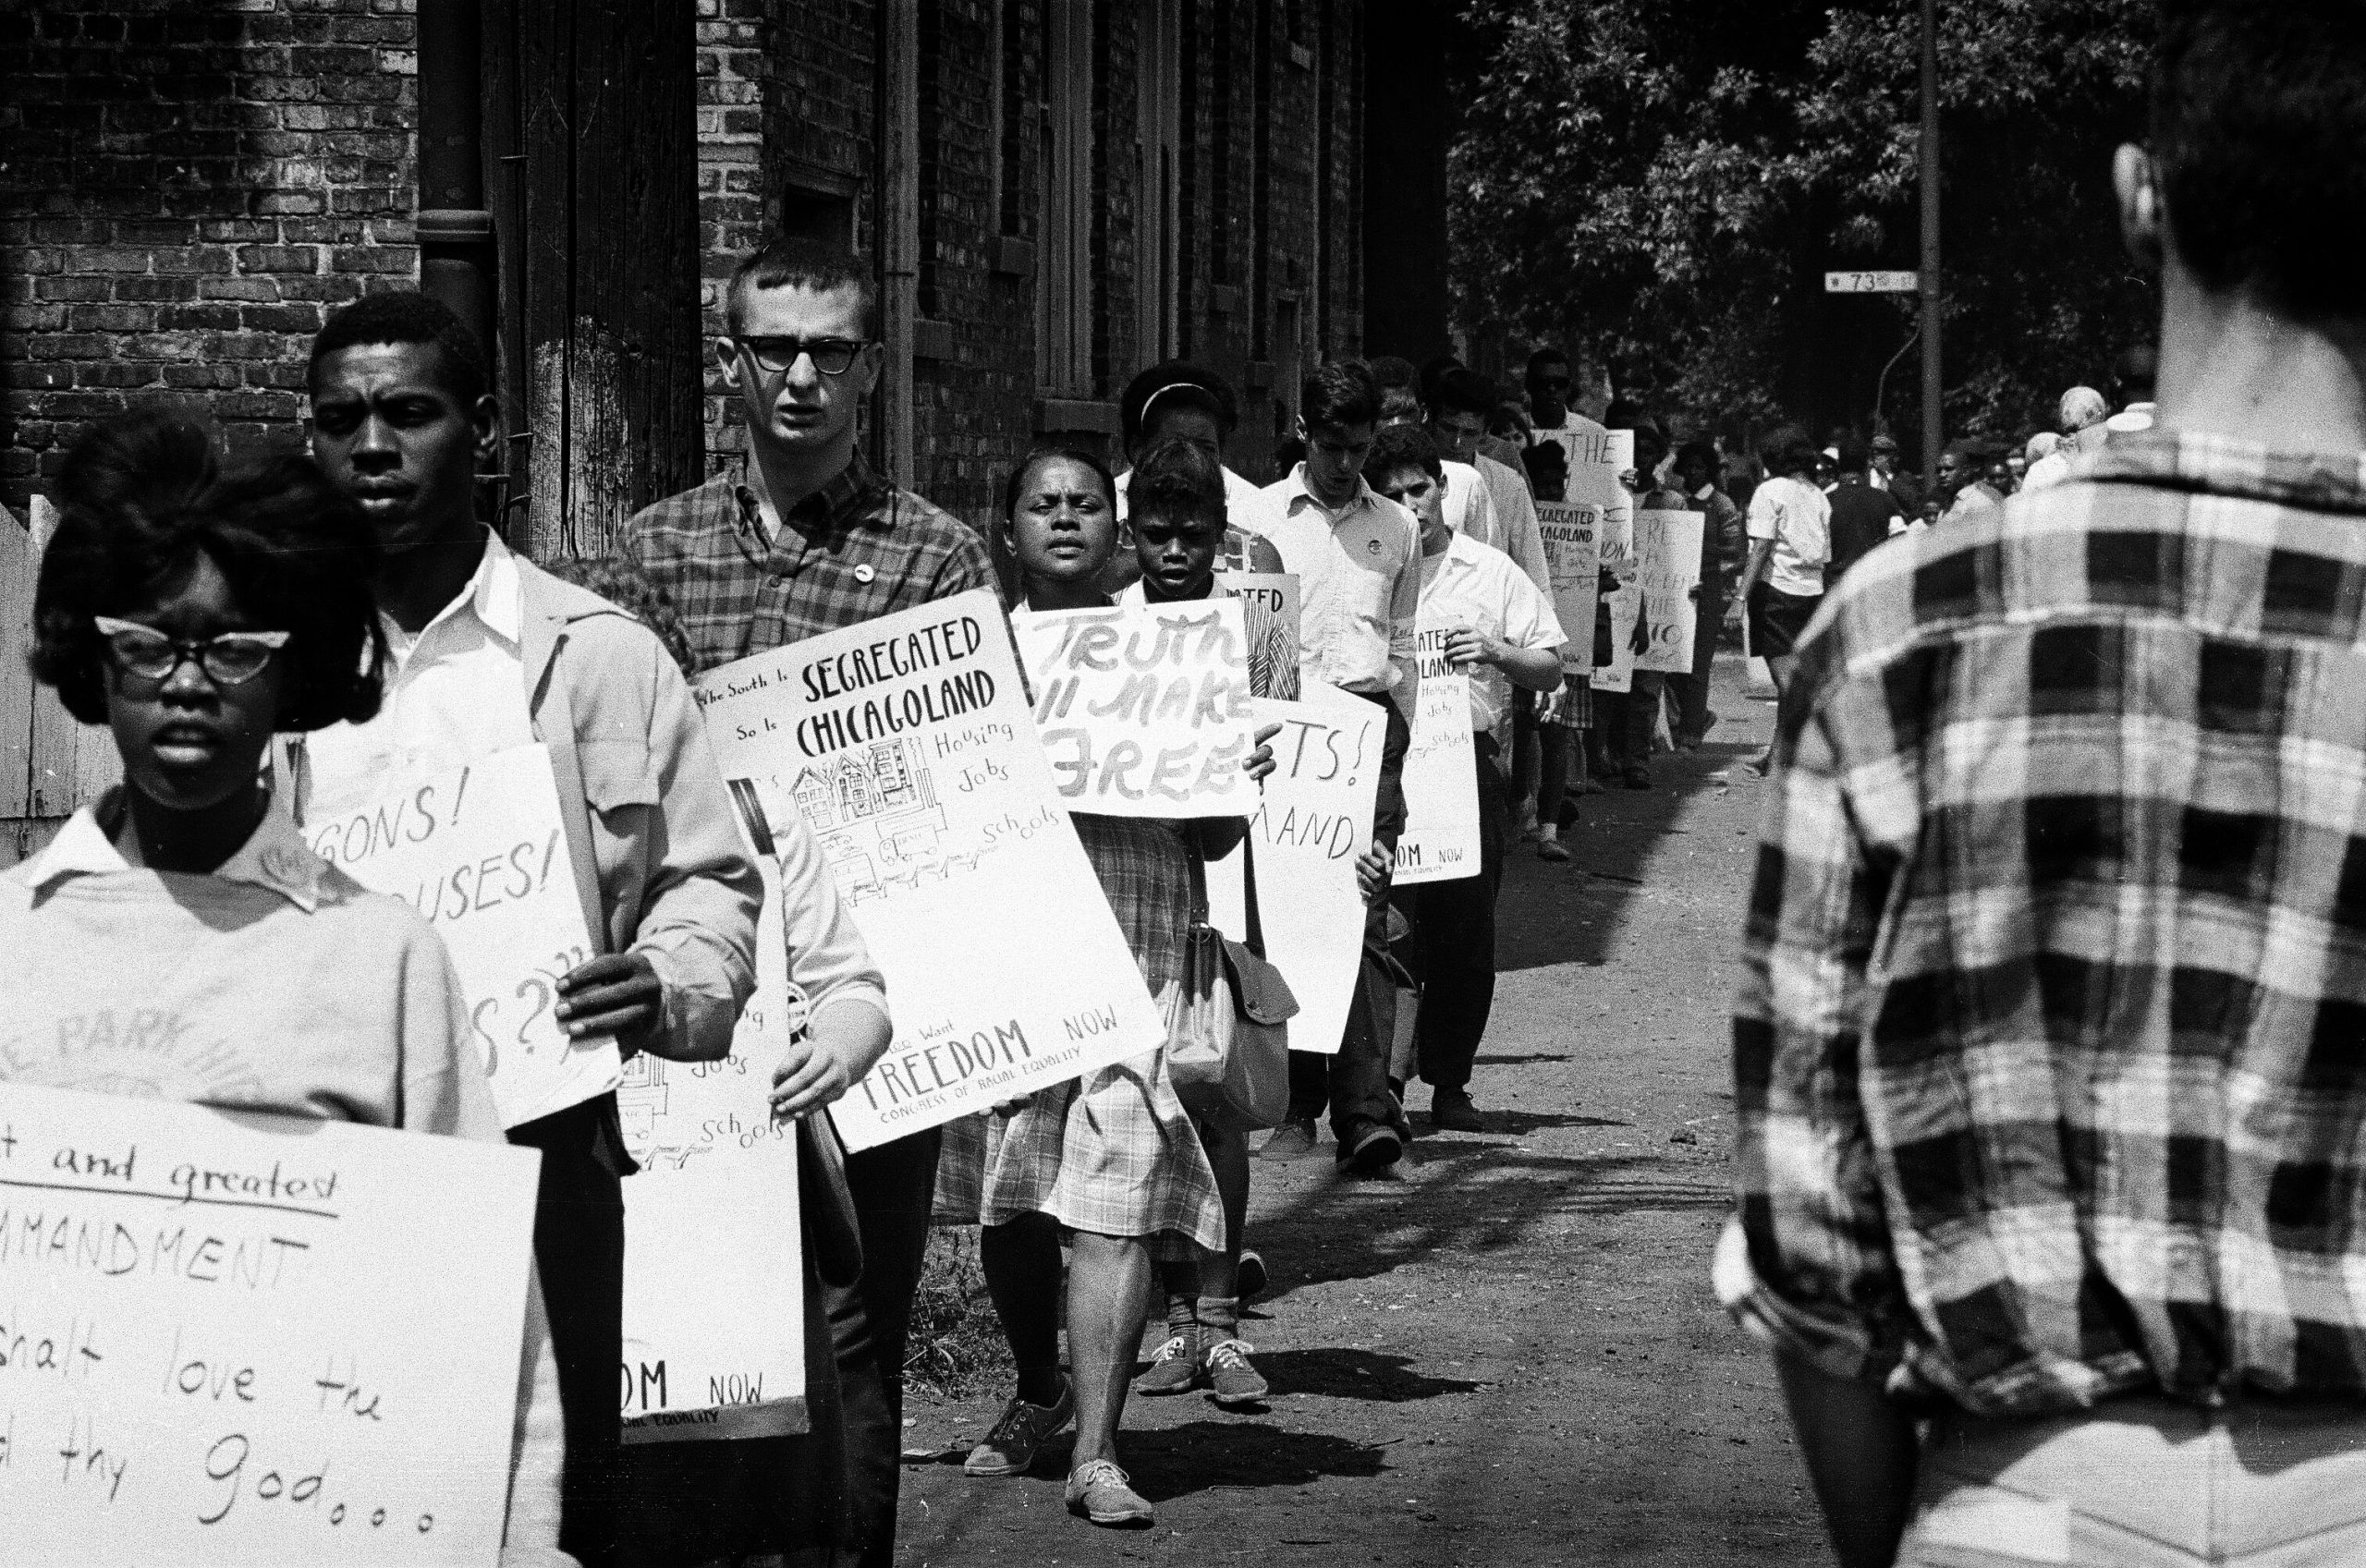 """CORE protesters carried posters that read """"The South is segregated. So is Chicagoland."""""""